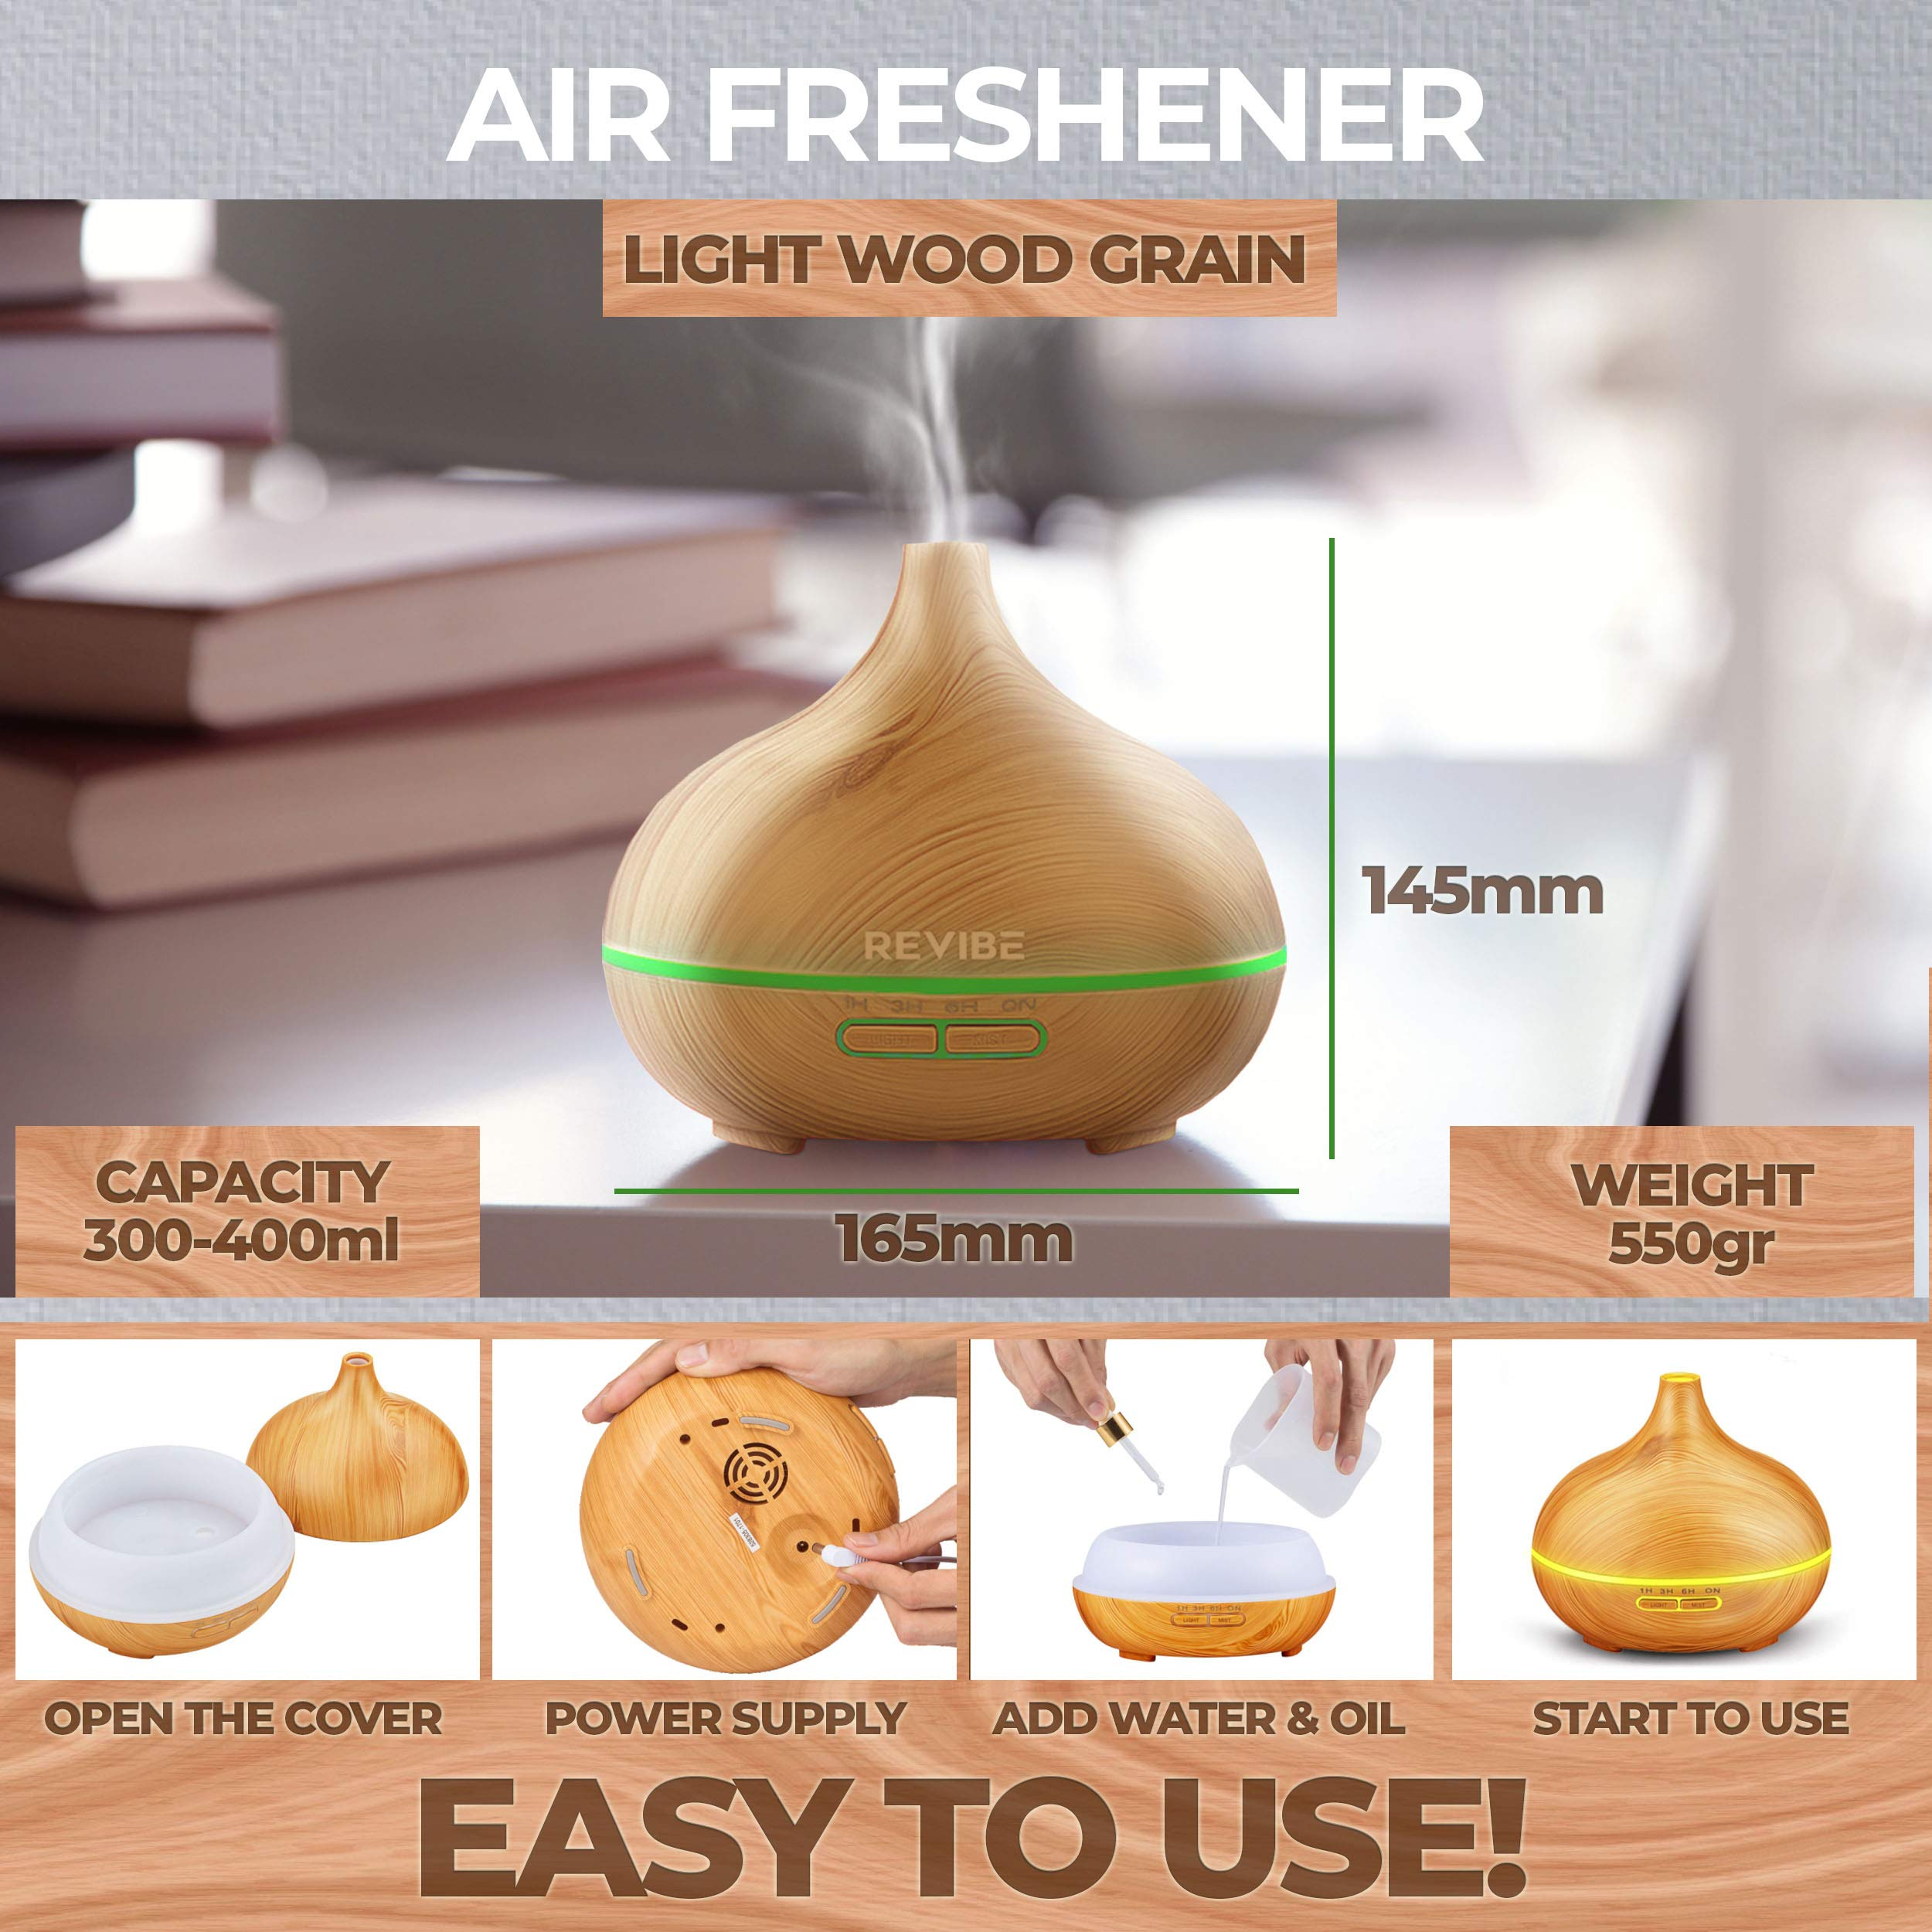 Ultrasonic Humidifier Night Light Diffuser - Create a Glorious Aroma throughout your Home and Experience the Benefits of Aromatherapy by Revibe (Image #5)